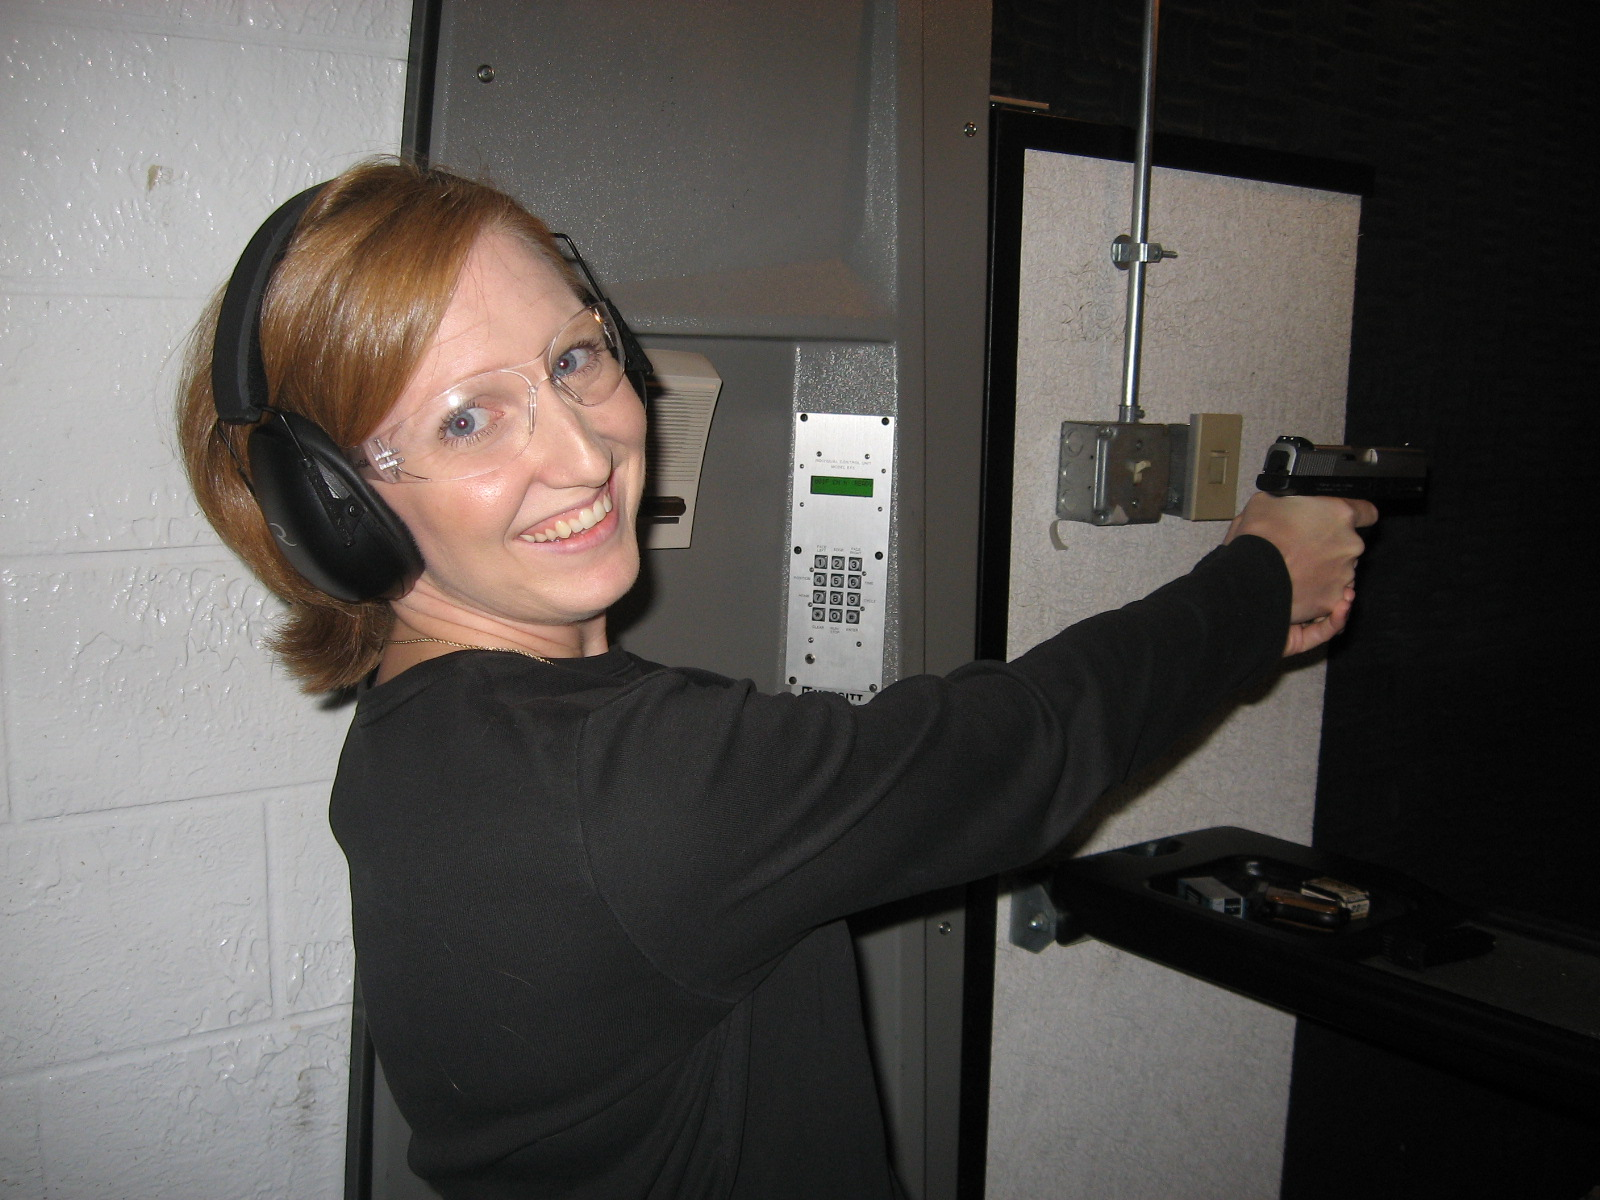 Range report: My Wife's 1st ever time to shoot-picture-002.jpg